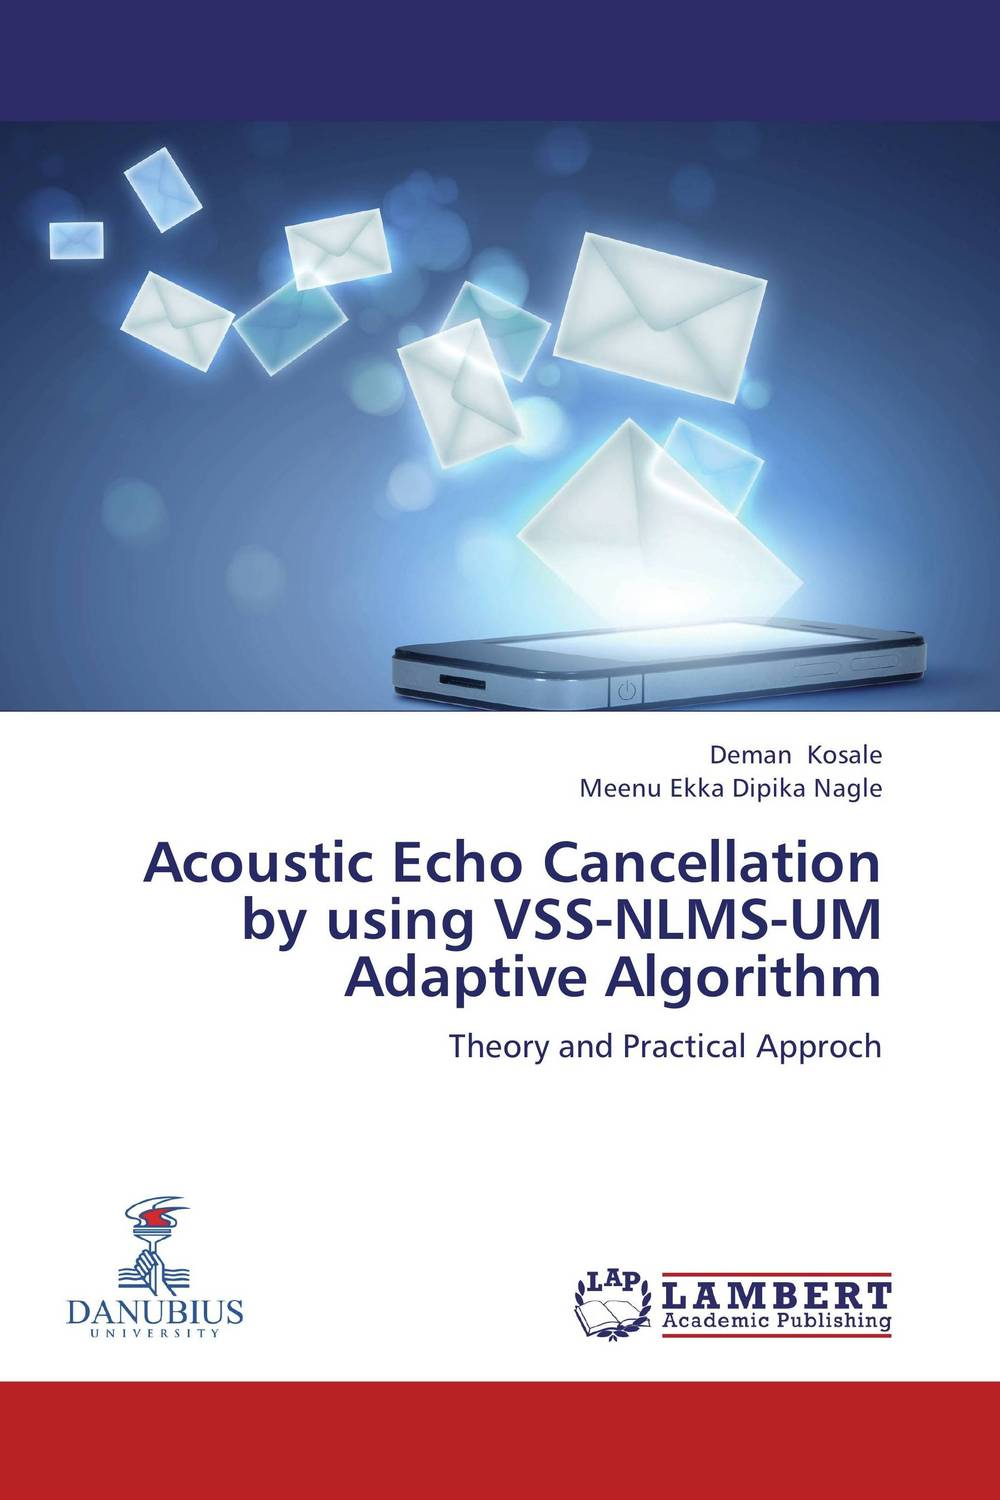 Acoustic Echo Cancellation by using VSS-NLMS-UM Adaptive Algorithm vidstar vss 4p4 60 vss 4p4 m0 60